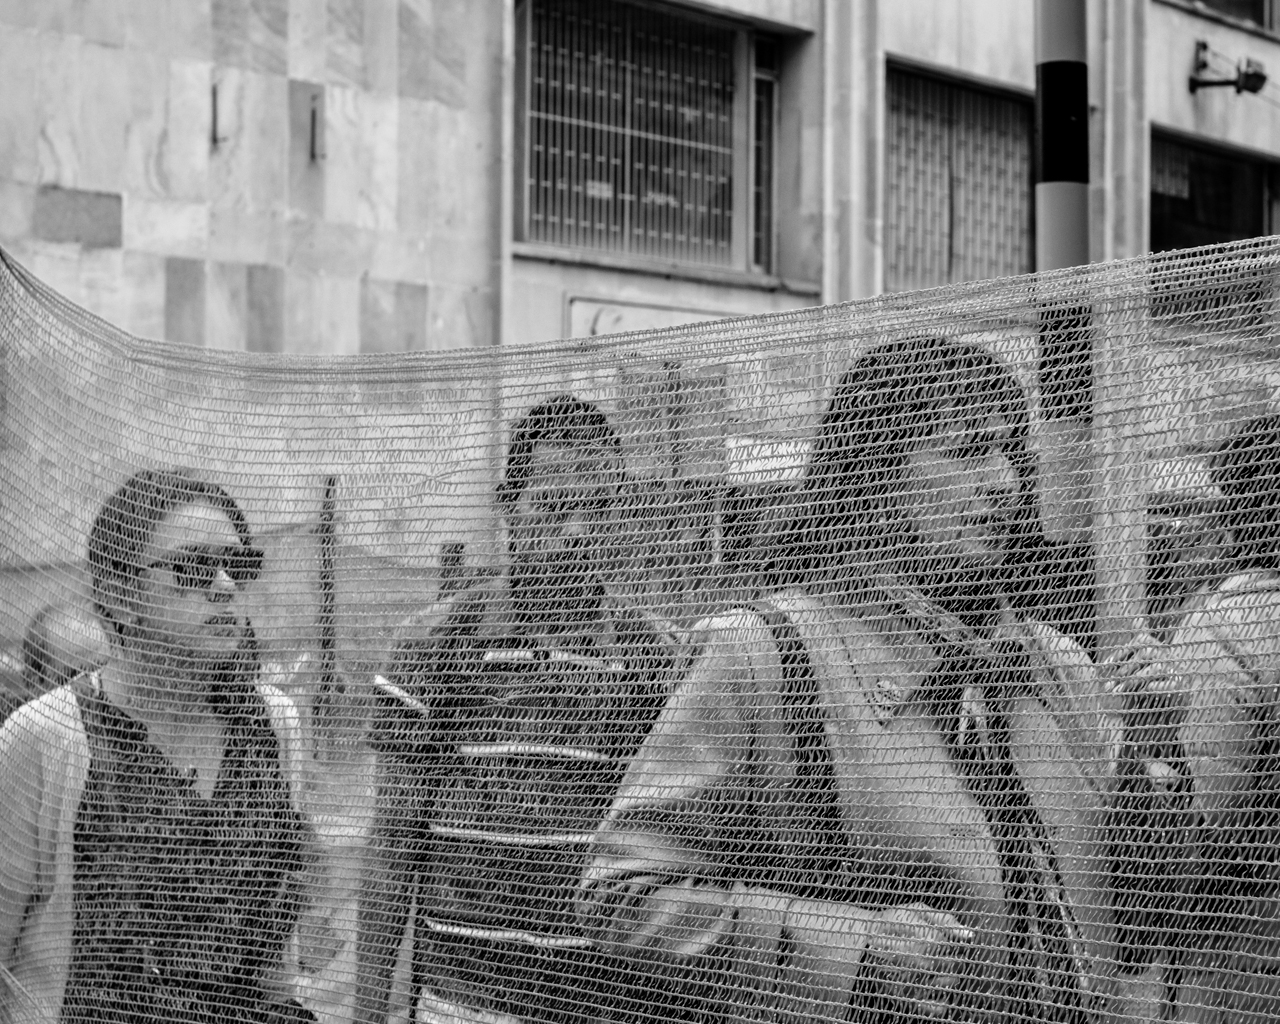 Passersby walk behind a net used to keep people away form ongoing construction on July 2, 2015. (Juan Cristóbal Cobo/The GroundTruth Project)